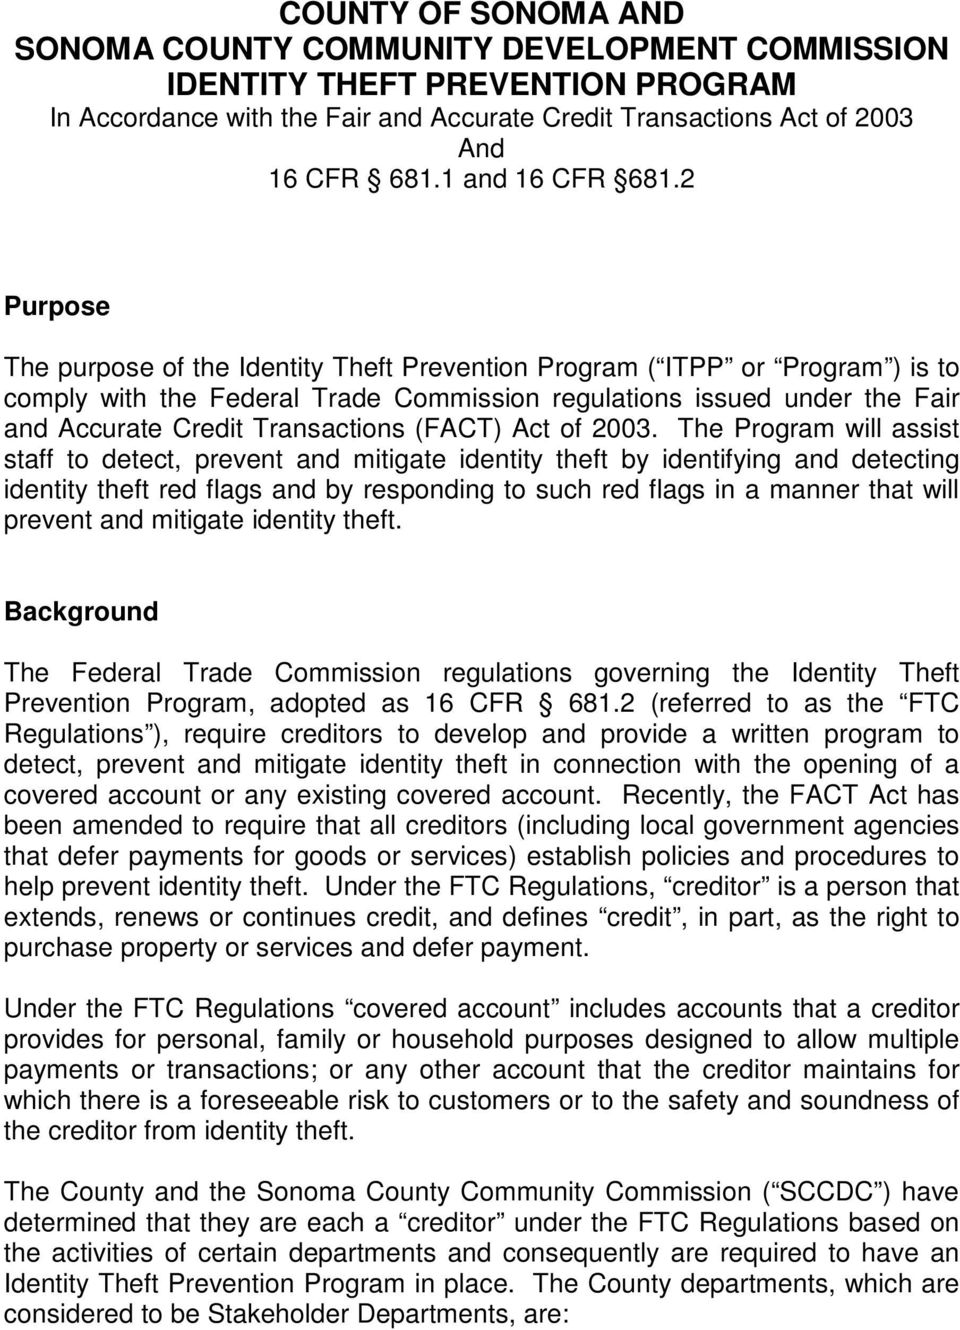 2 Purpose The purpose of the Identity Theft Prevention Program ( ITPP or Program ) is to comply with the Federal Trade Commission regulations issued under the Fair and Accurate Credit Transactions